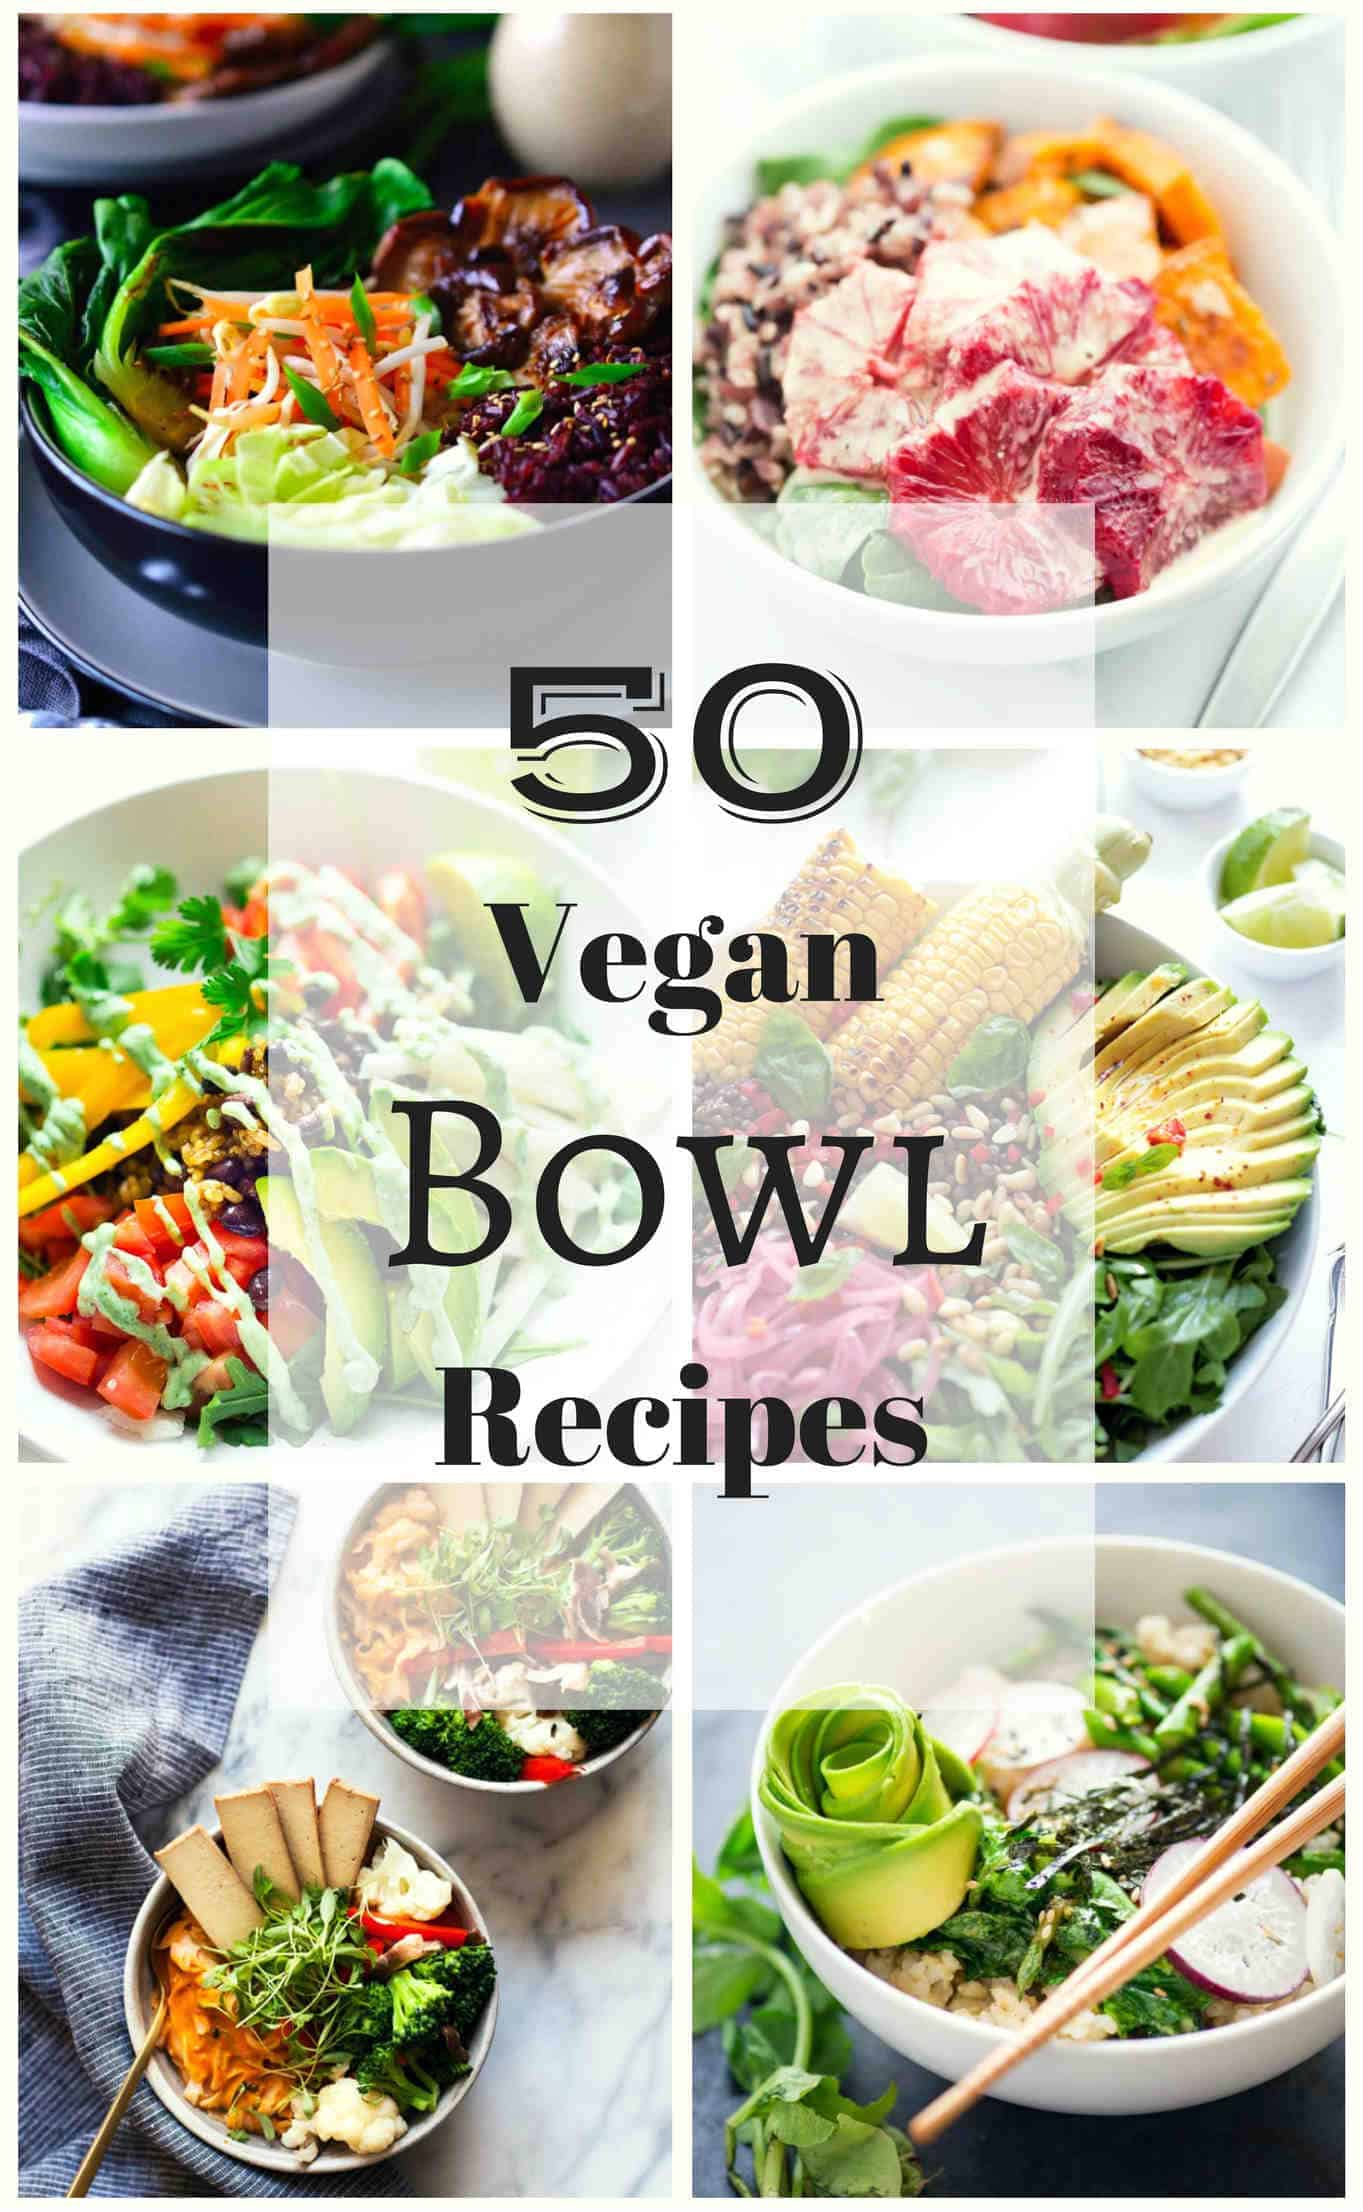 50 vegan bowl recipes the stingy vegan buddha bowls nourish bowls macro bowls glow bowls hippie bowls power bowls and protein bowls that ones mine whatever you choose to call your meal forumfinder Image collections